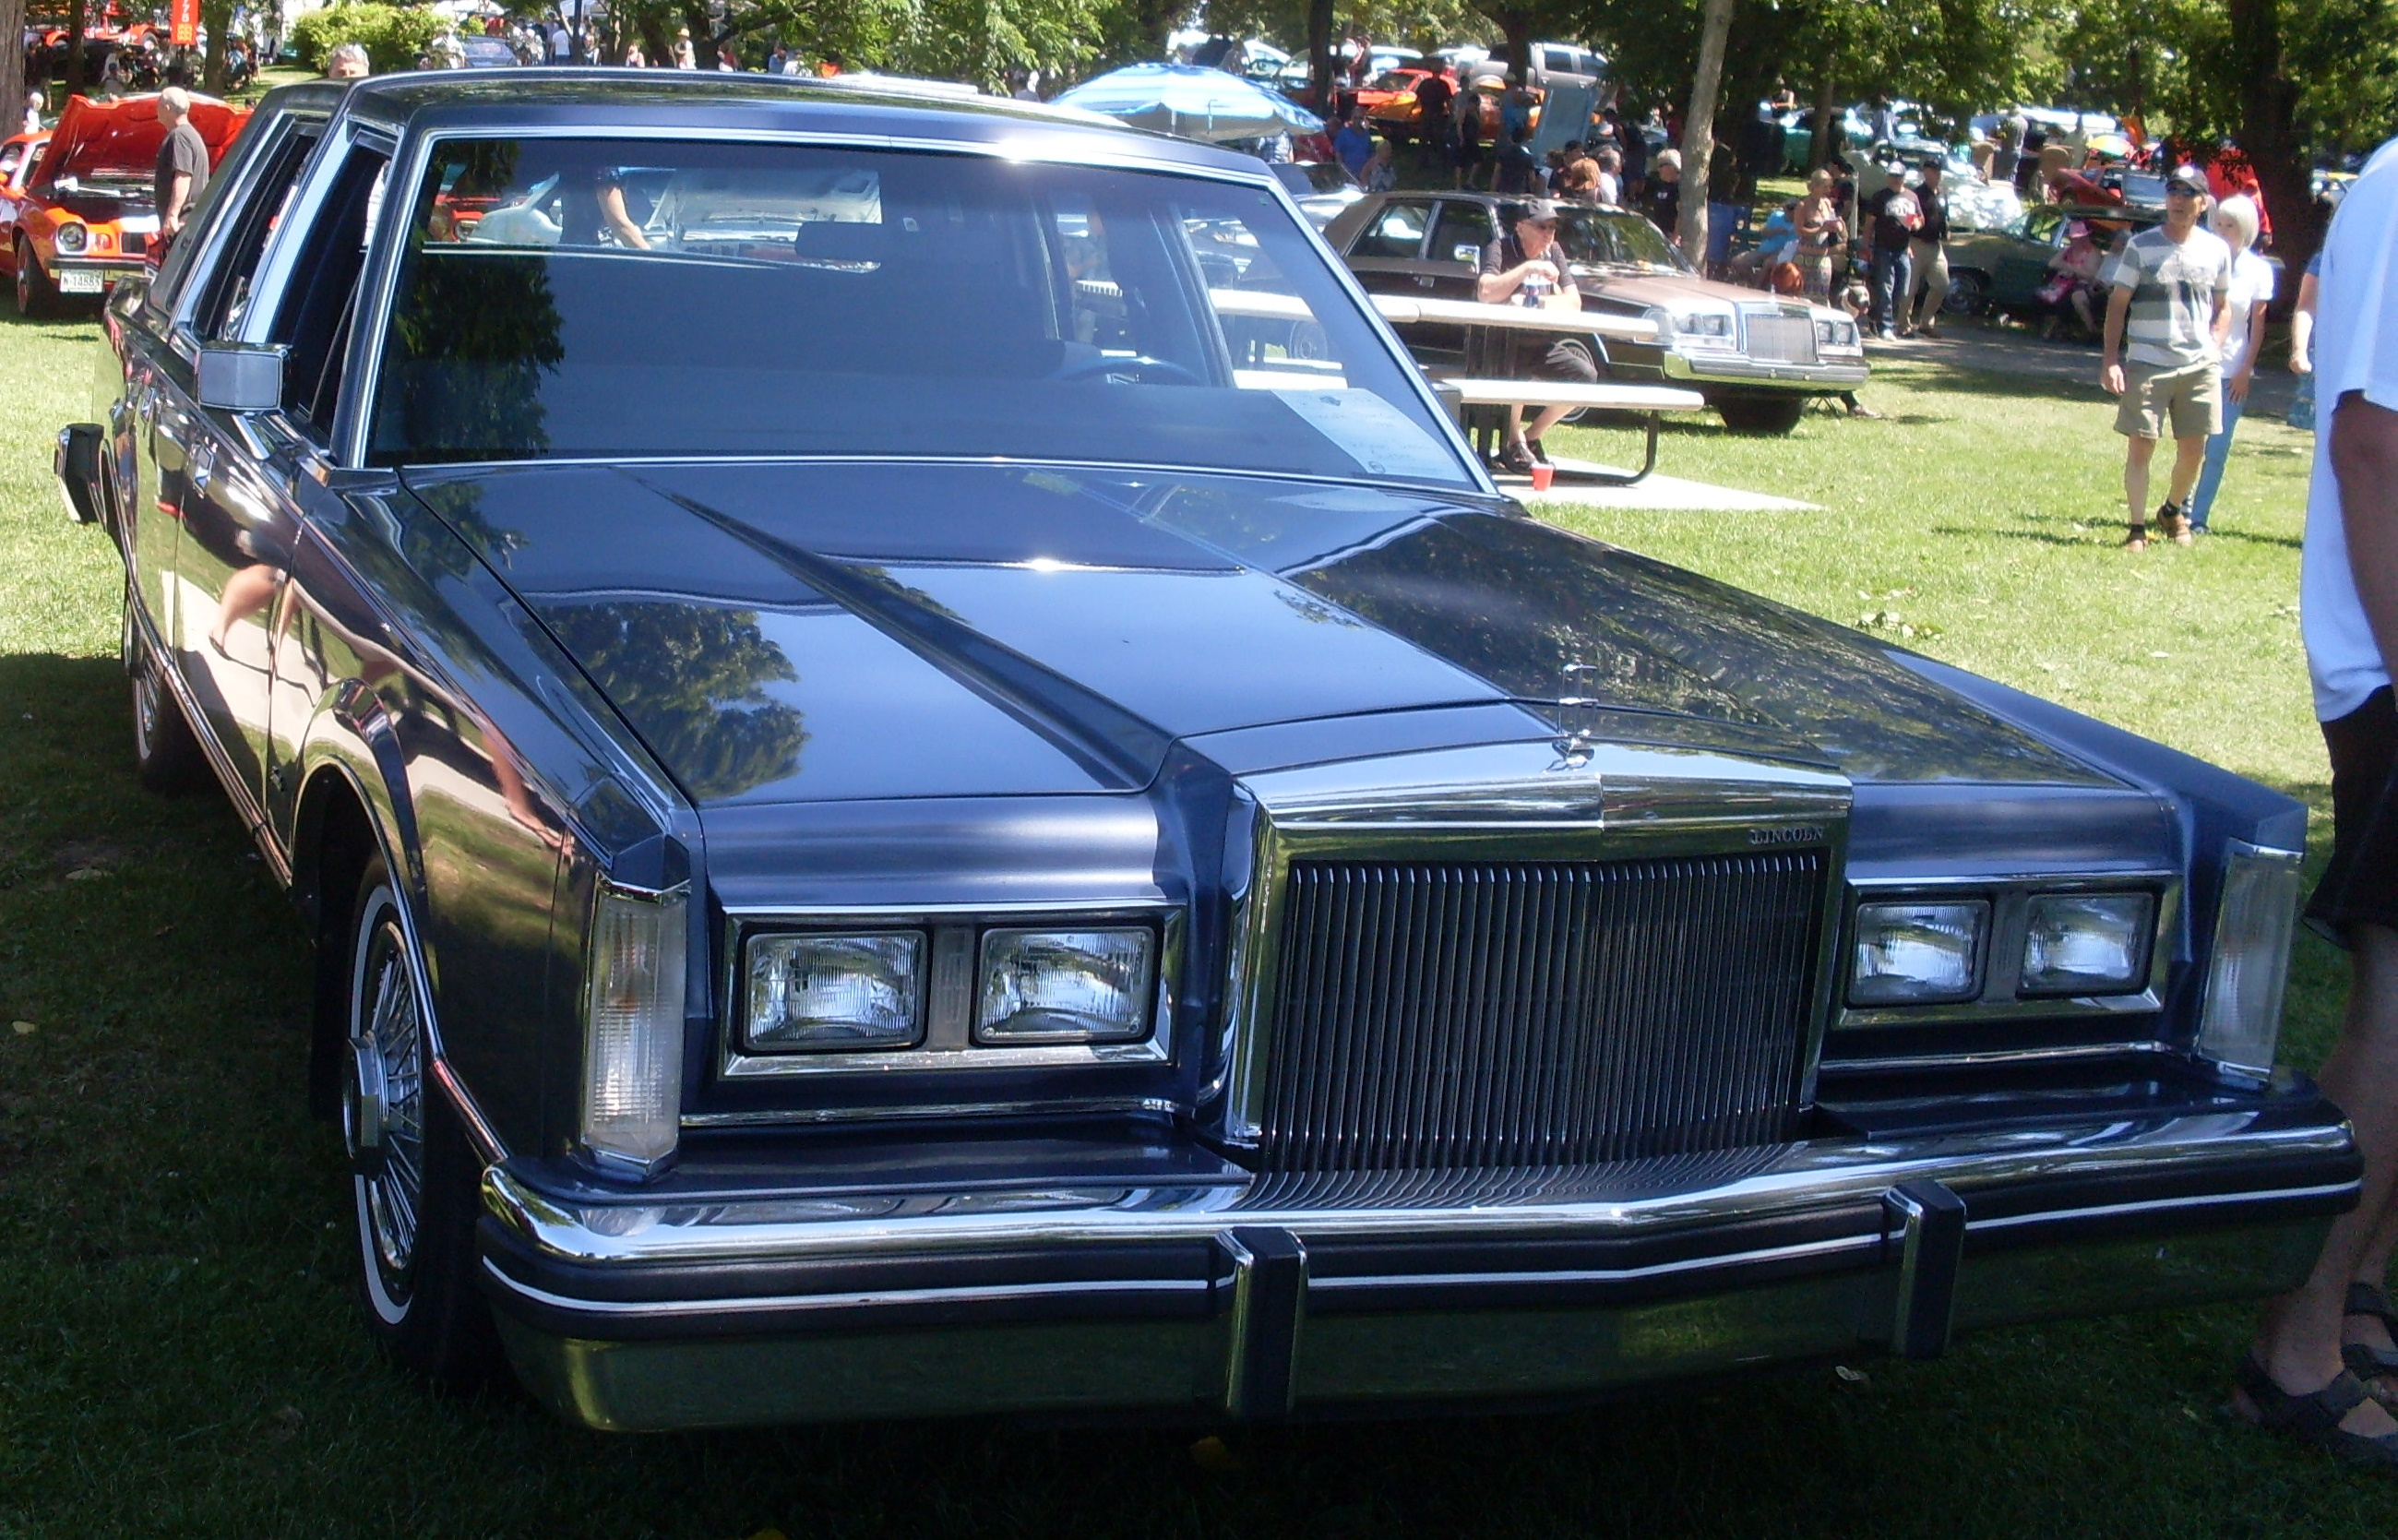 File:'84 Lincoln Town Car (Auto clique VACM Chambly '13).JPG ...